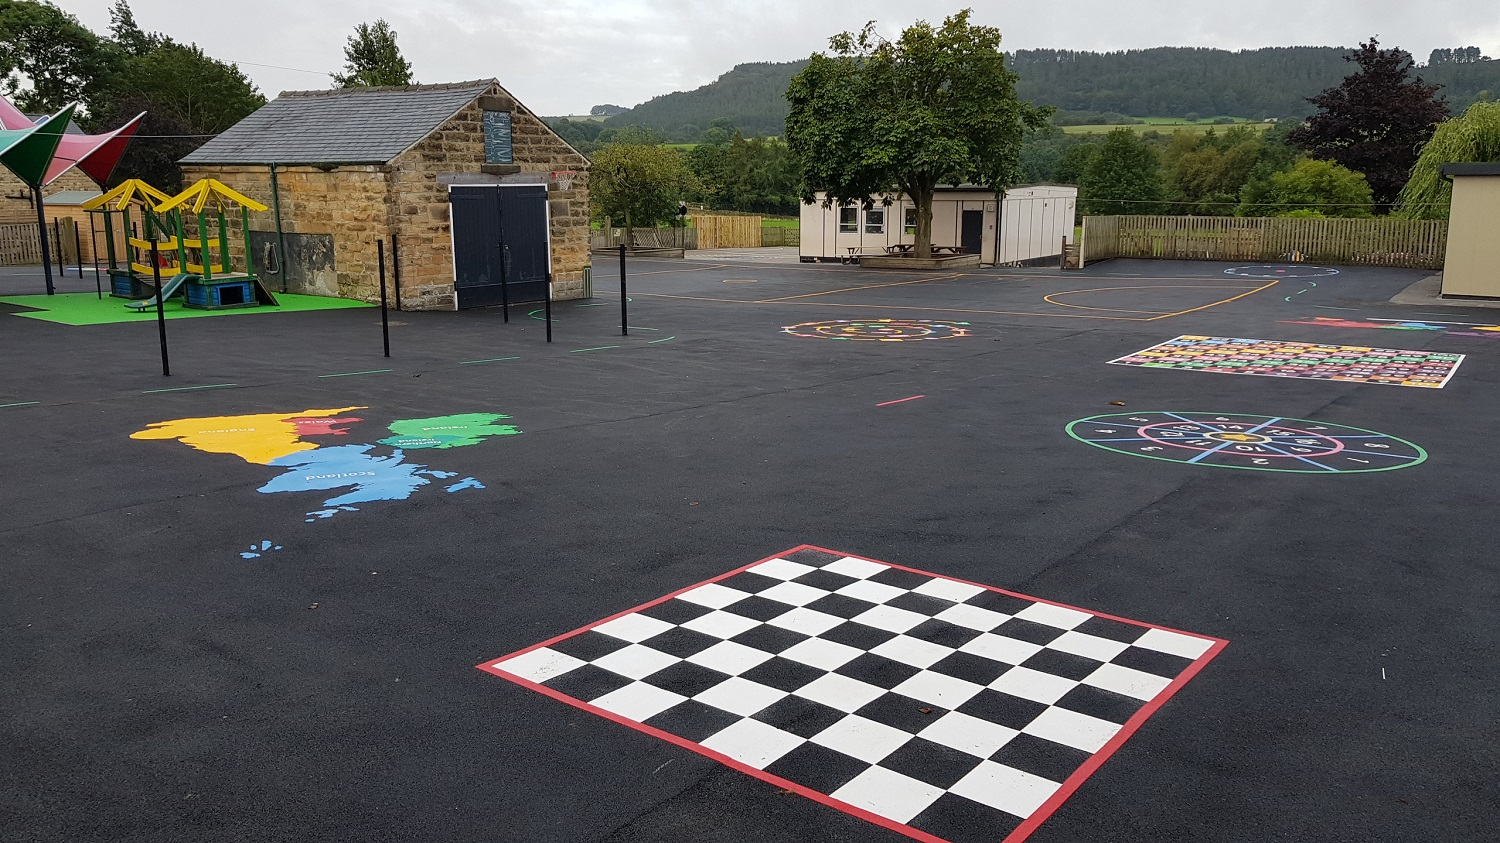 P24 Playground Tarmac Surfacing & Playground Markings at Ashover Primary School in Ashover